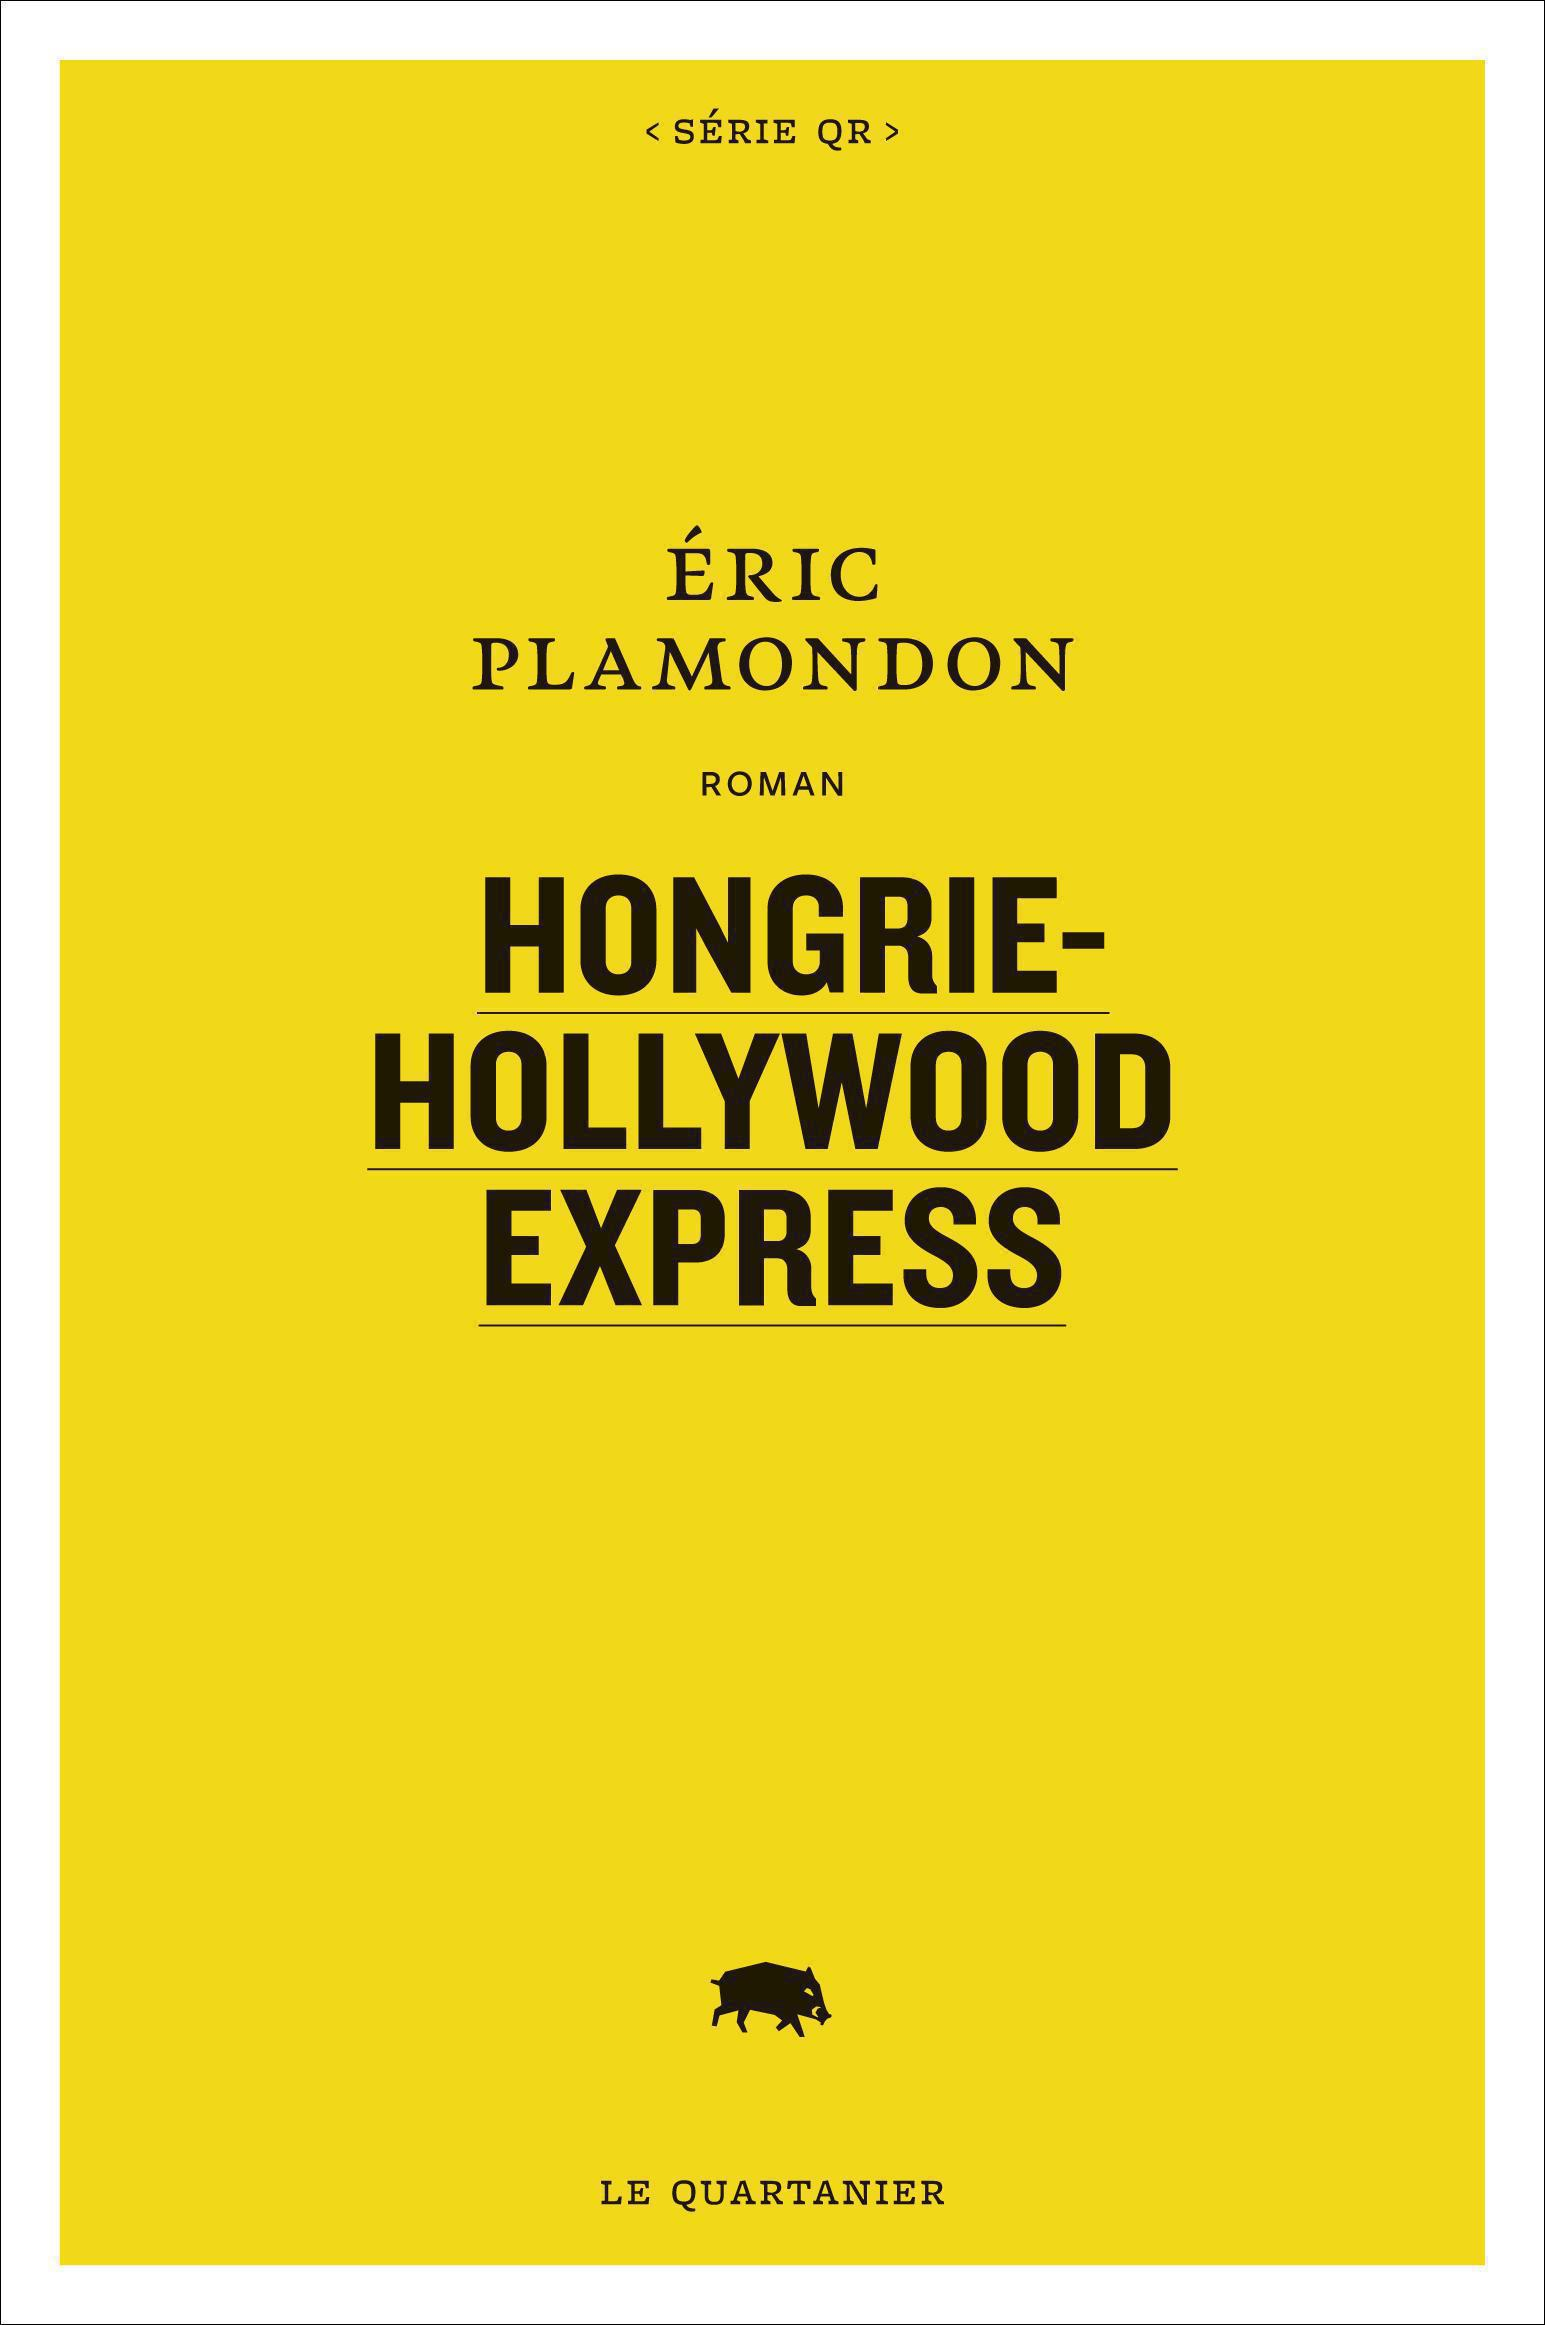 Couverture : Hongrie-Hollywood Express Eric Plamondon